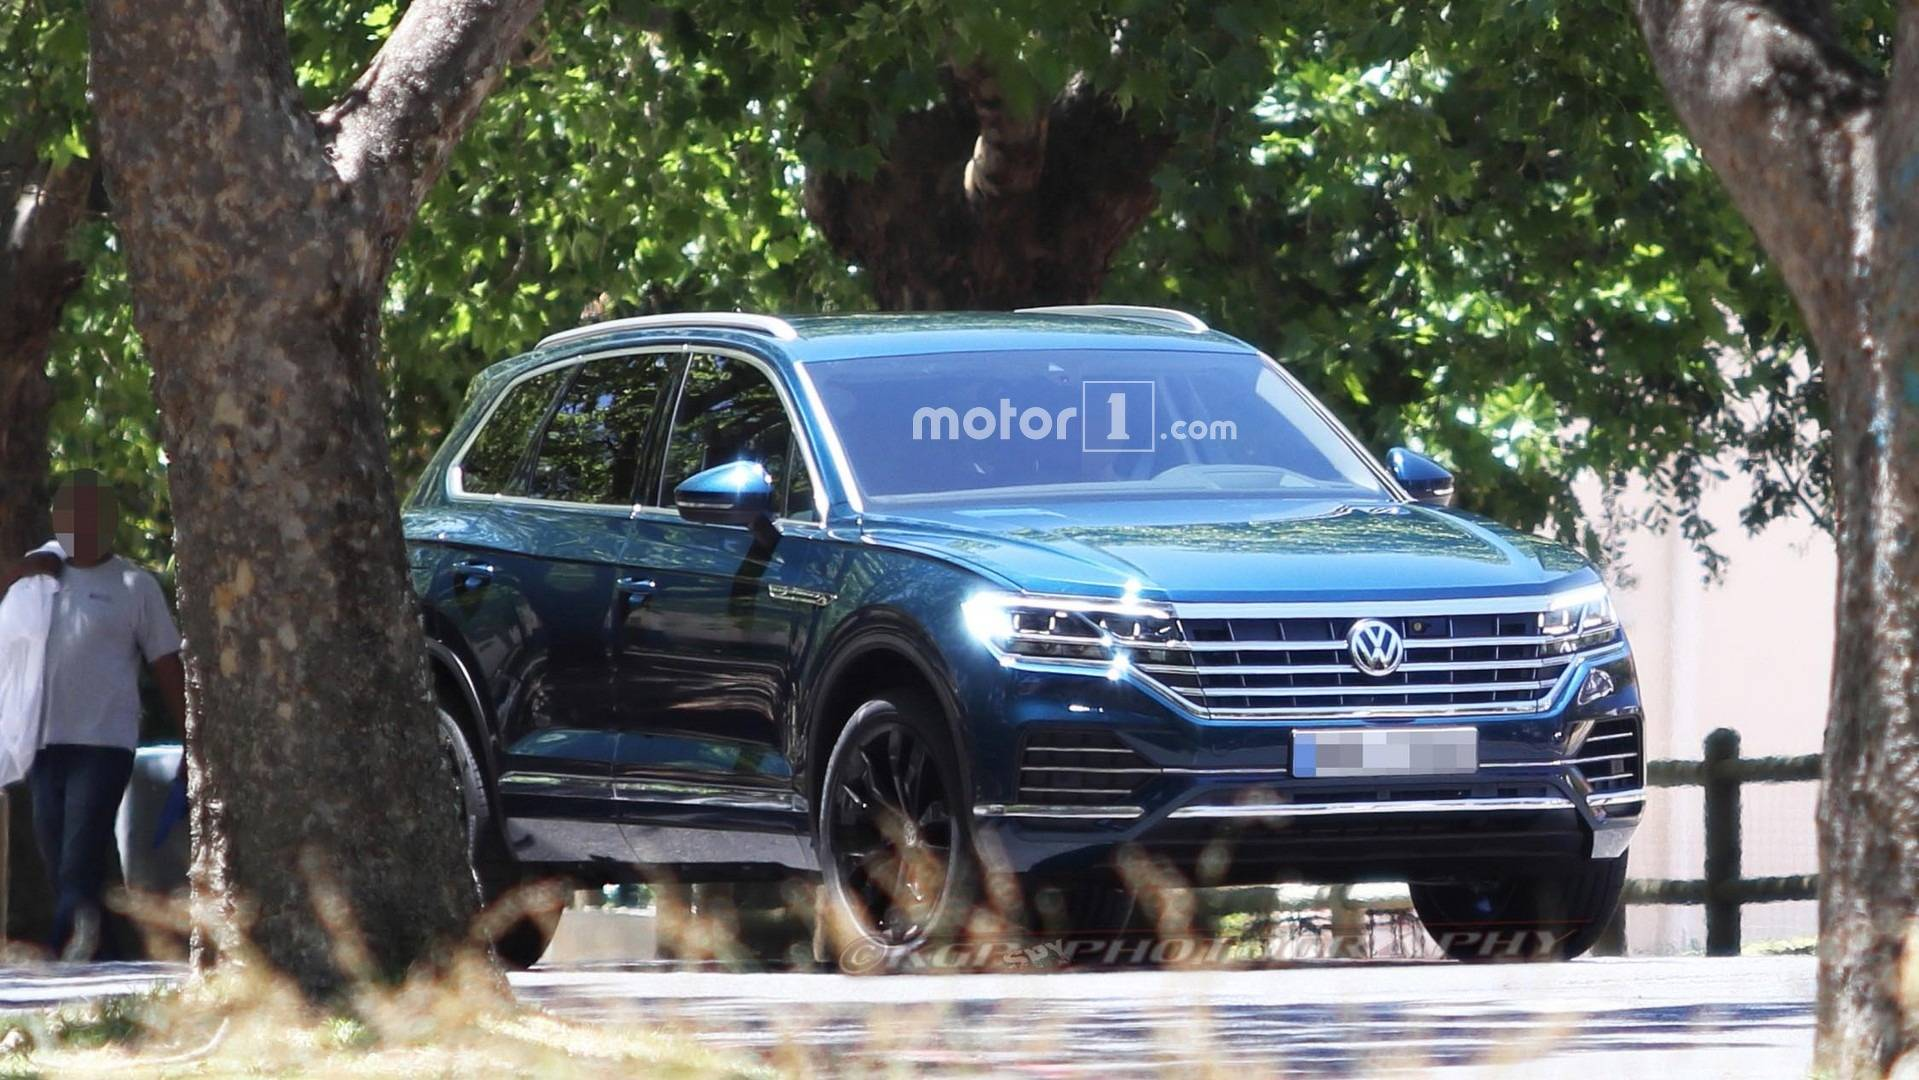 2019 Vw Touareg First Official Interior Images Are Out